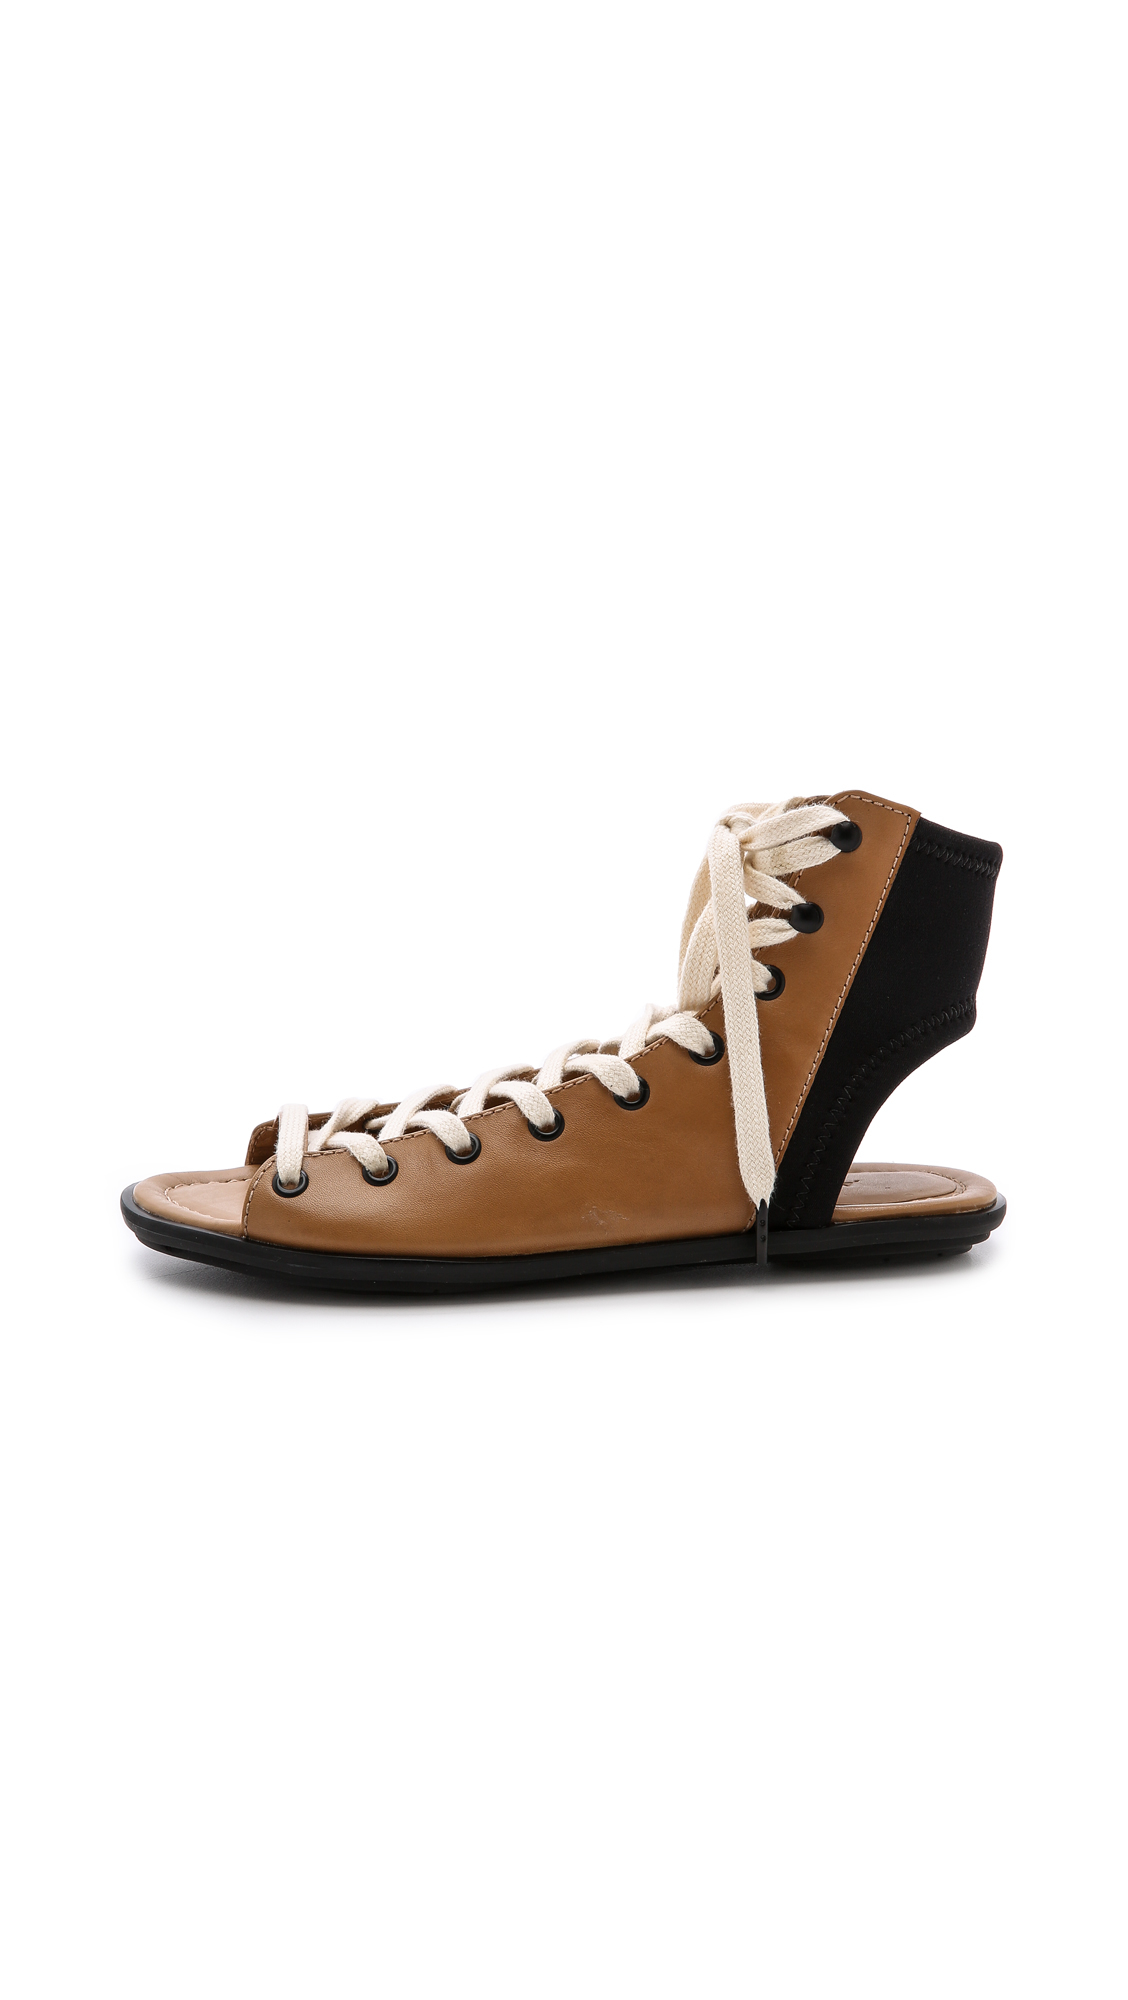 Lyst Atelje71 Fidelio Lace Up Sandals Camel Black In Brown